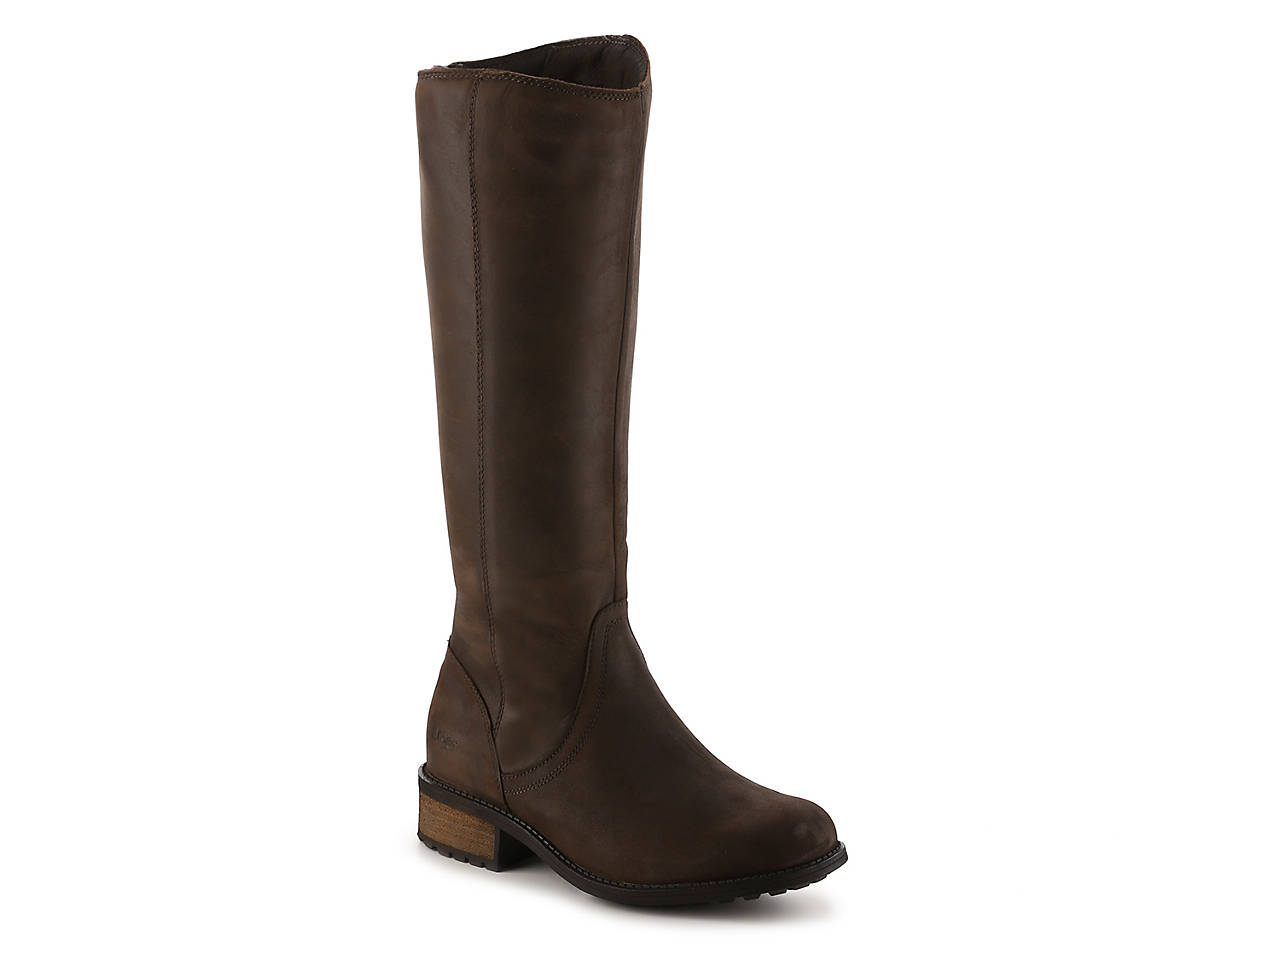 Australia Seldon Riding Boot